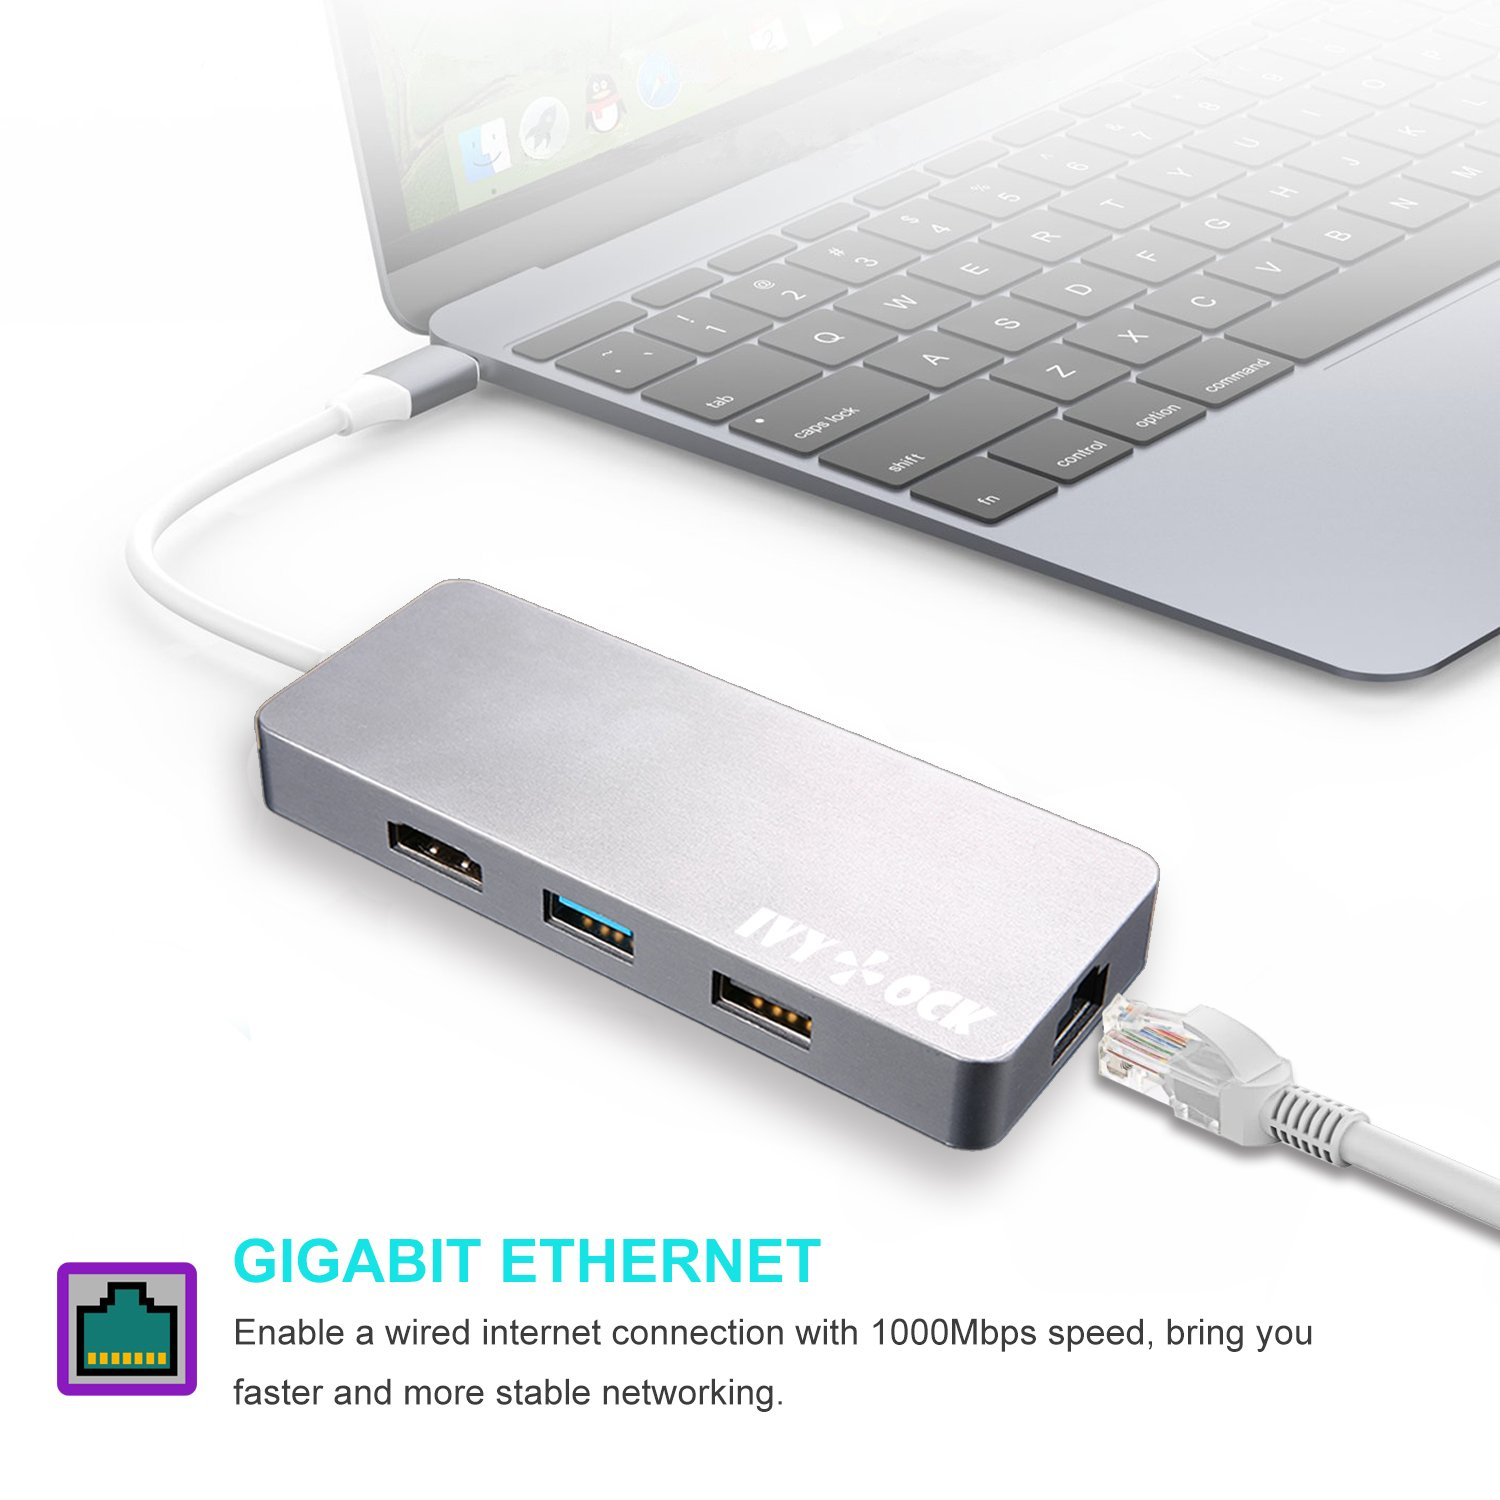 USB C Hub, IVYOCK Type C Hub Dongle with HDMI, Gigabit Ethernet, Type-C Charging Port, USB 3.0/2.0 Ports, SD/Micro SD Card Reader, USB-C Adapter for MacBook Pro/Pixelbook/Dell XPS/Yoga and More by IVYOCK (Image #4)